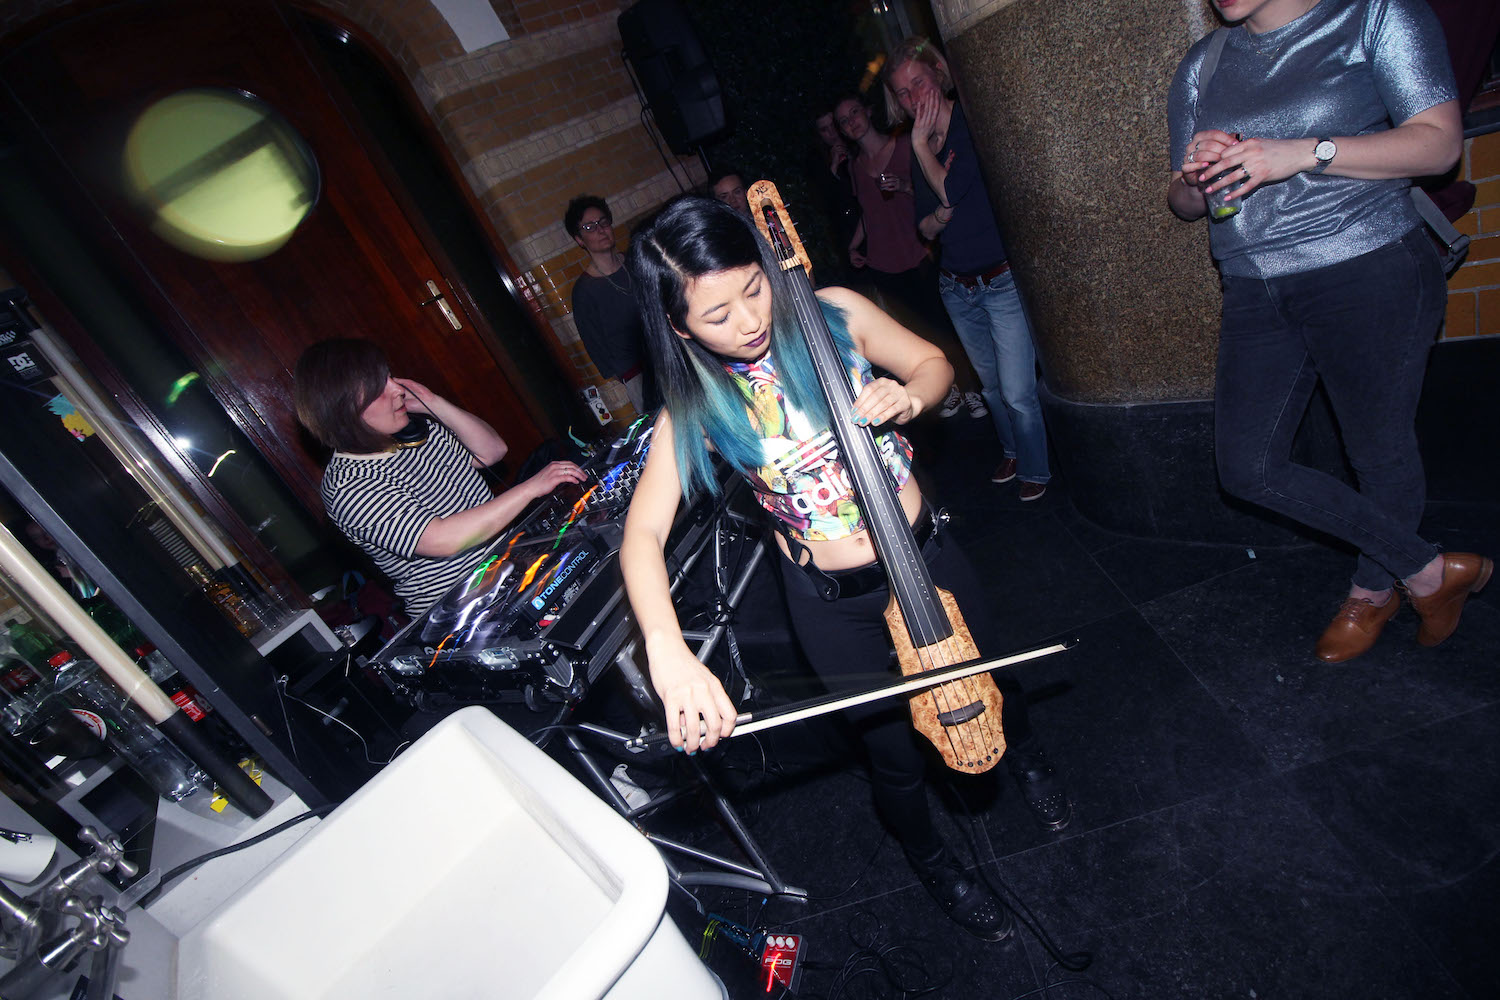 Girl-Drop-Yarrr-Cut-Throat-Amsterdam-DJ-Nata-Babaju-The-Wong-Janice-electric-cellist-music-producer-based-in-Amsterdam-1.jpg